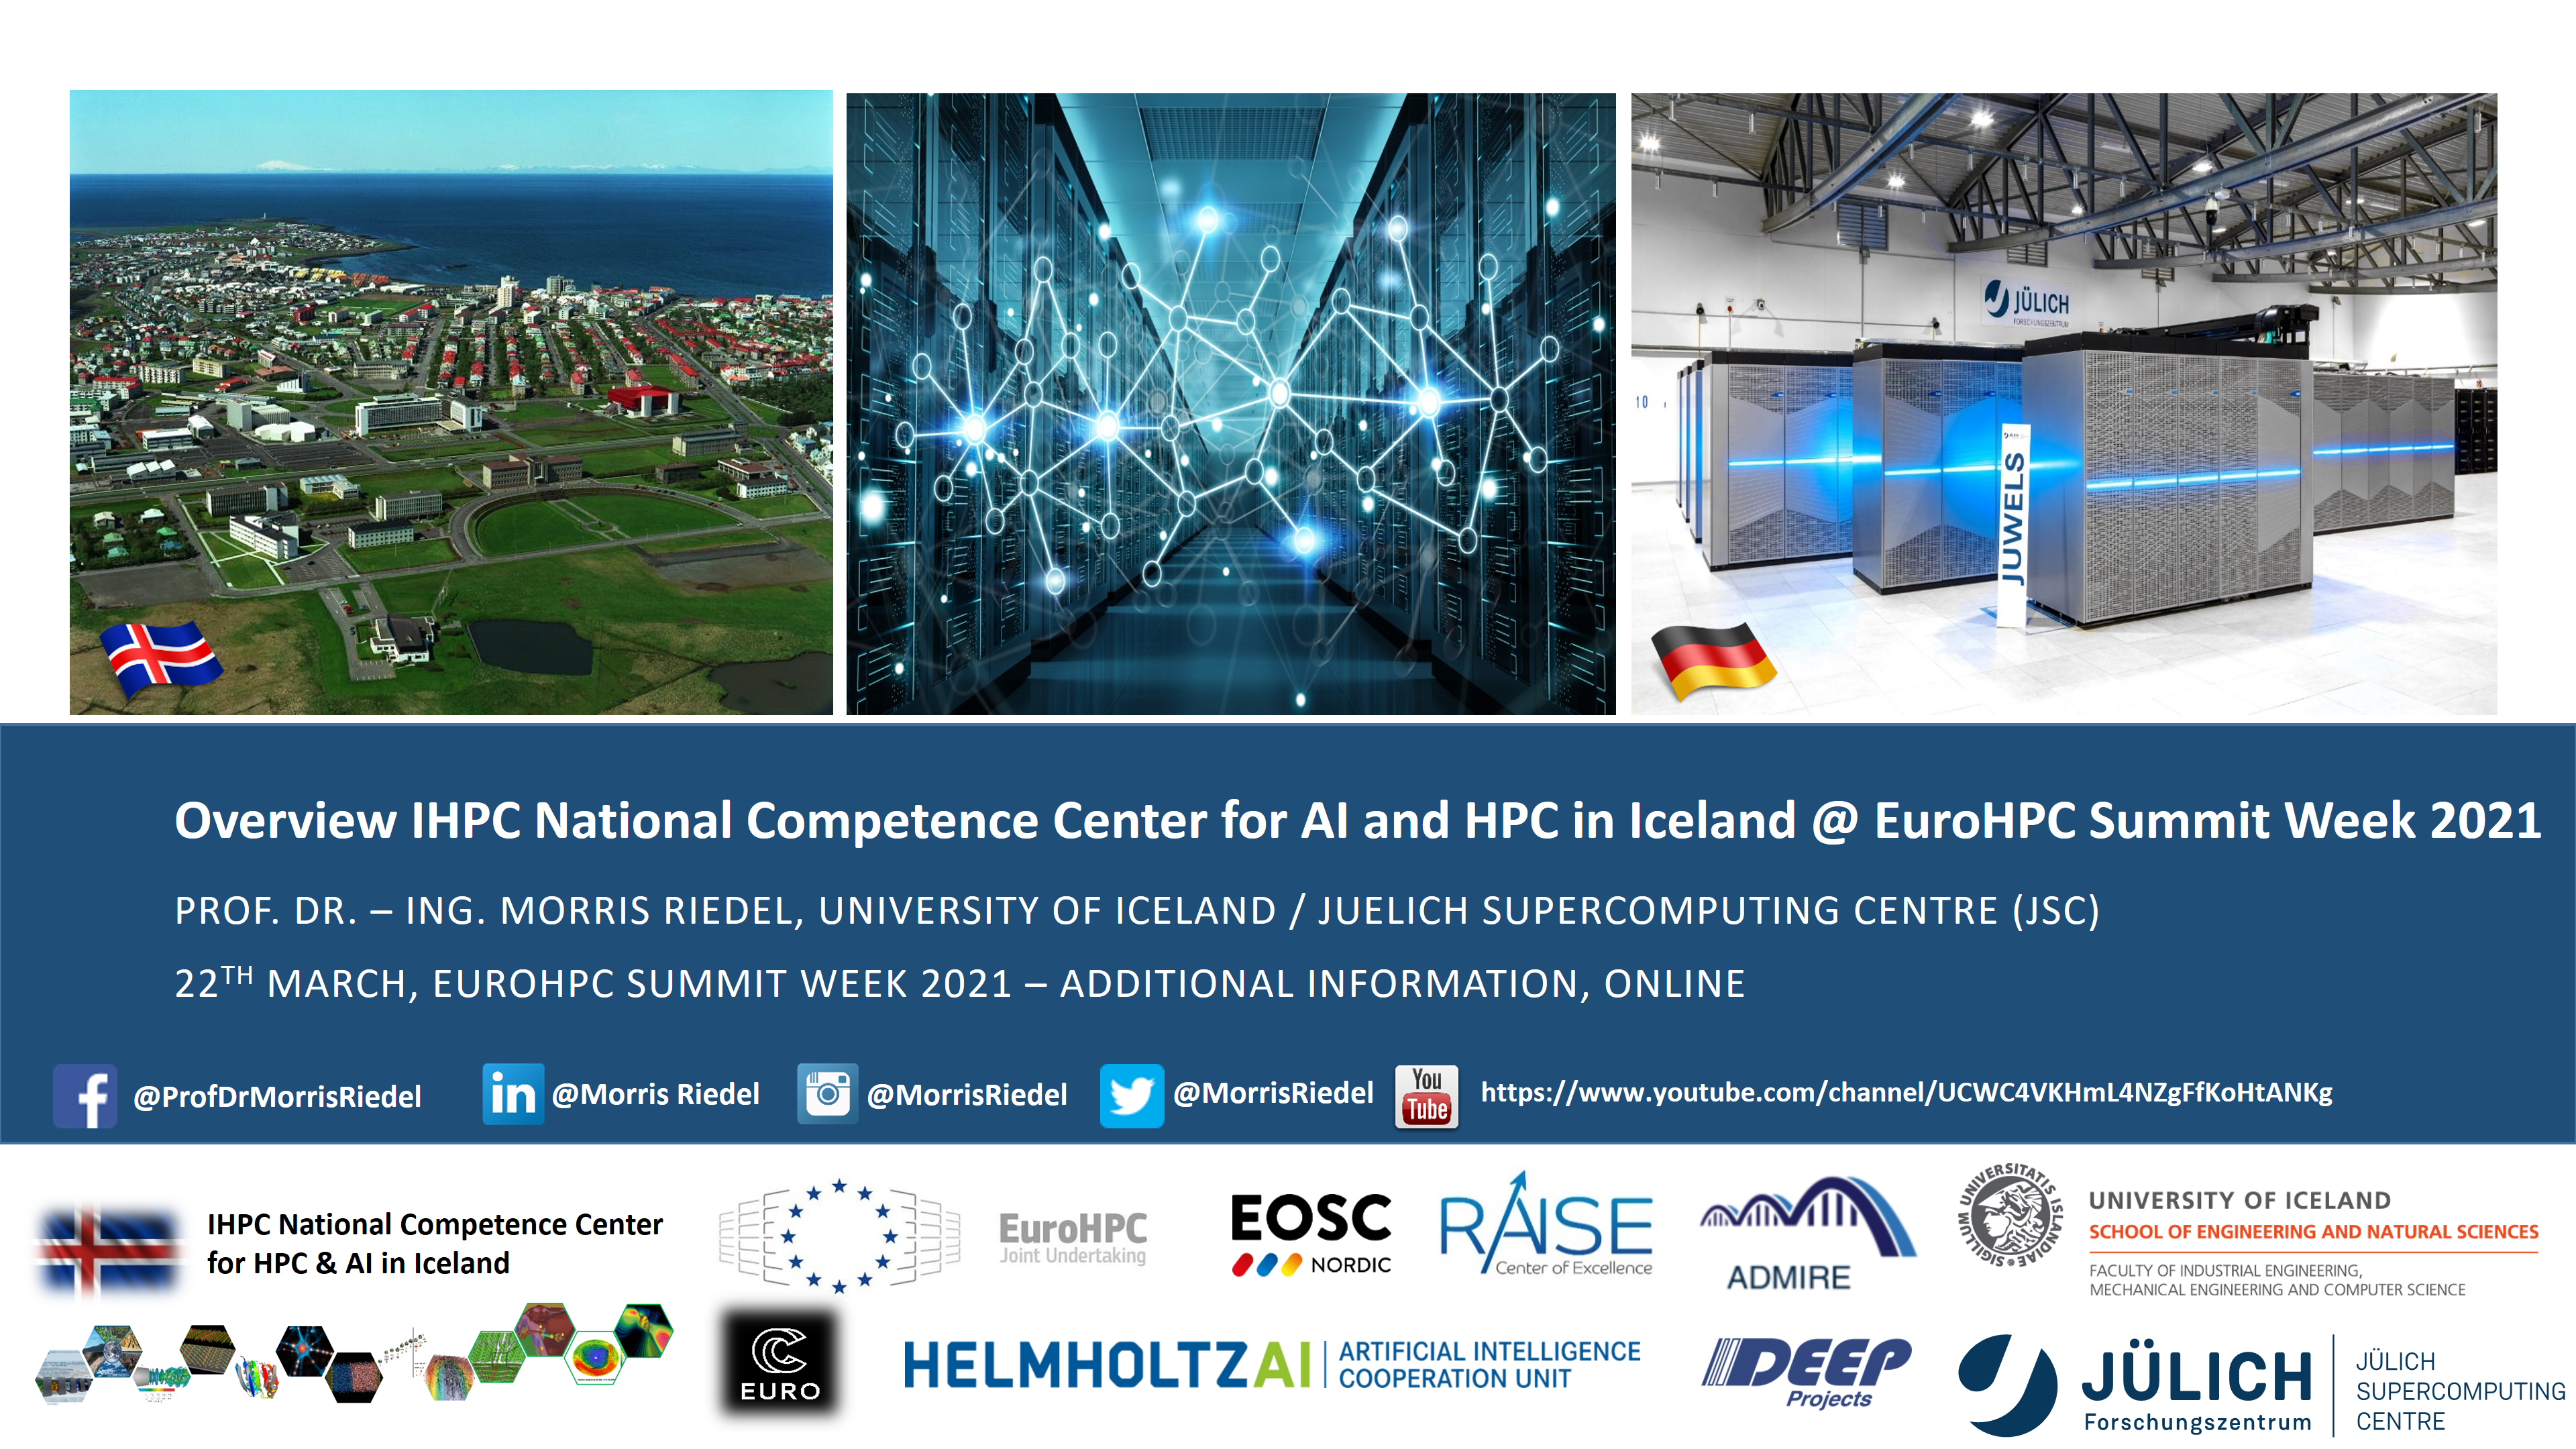 Overview IHPC National Competence Center of Iceland for AI and HPC at EuroHPC Summit Week 2021 Morris Riedel